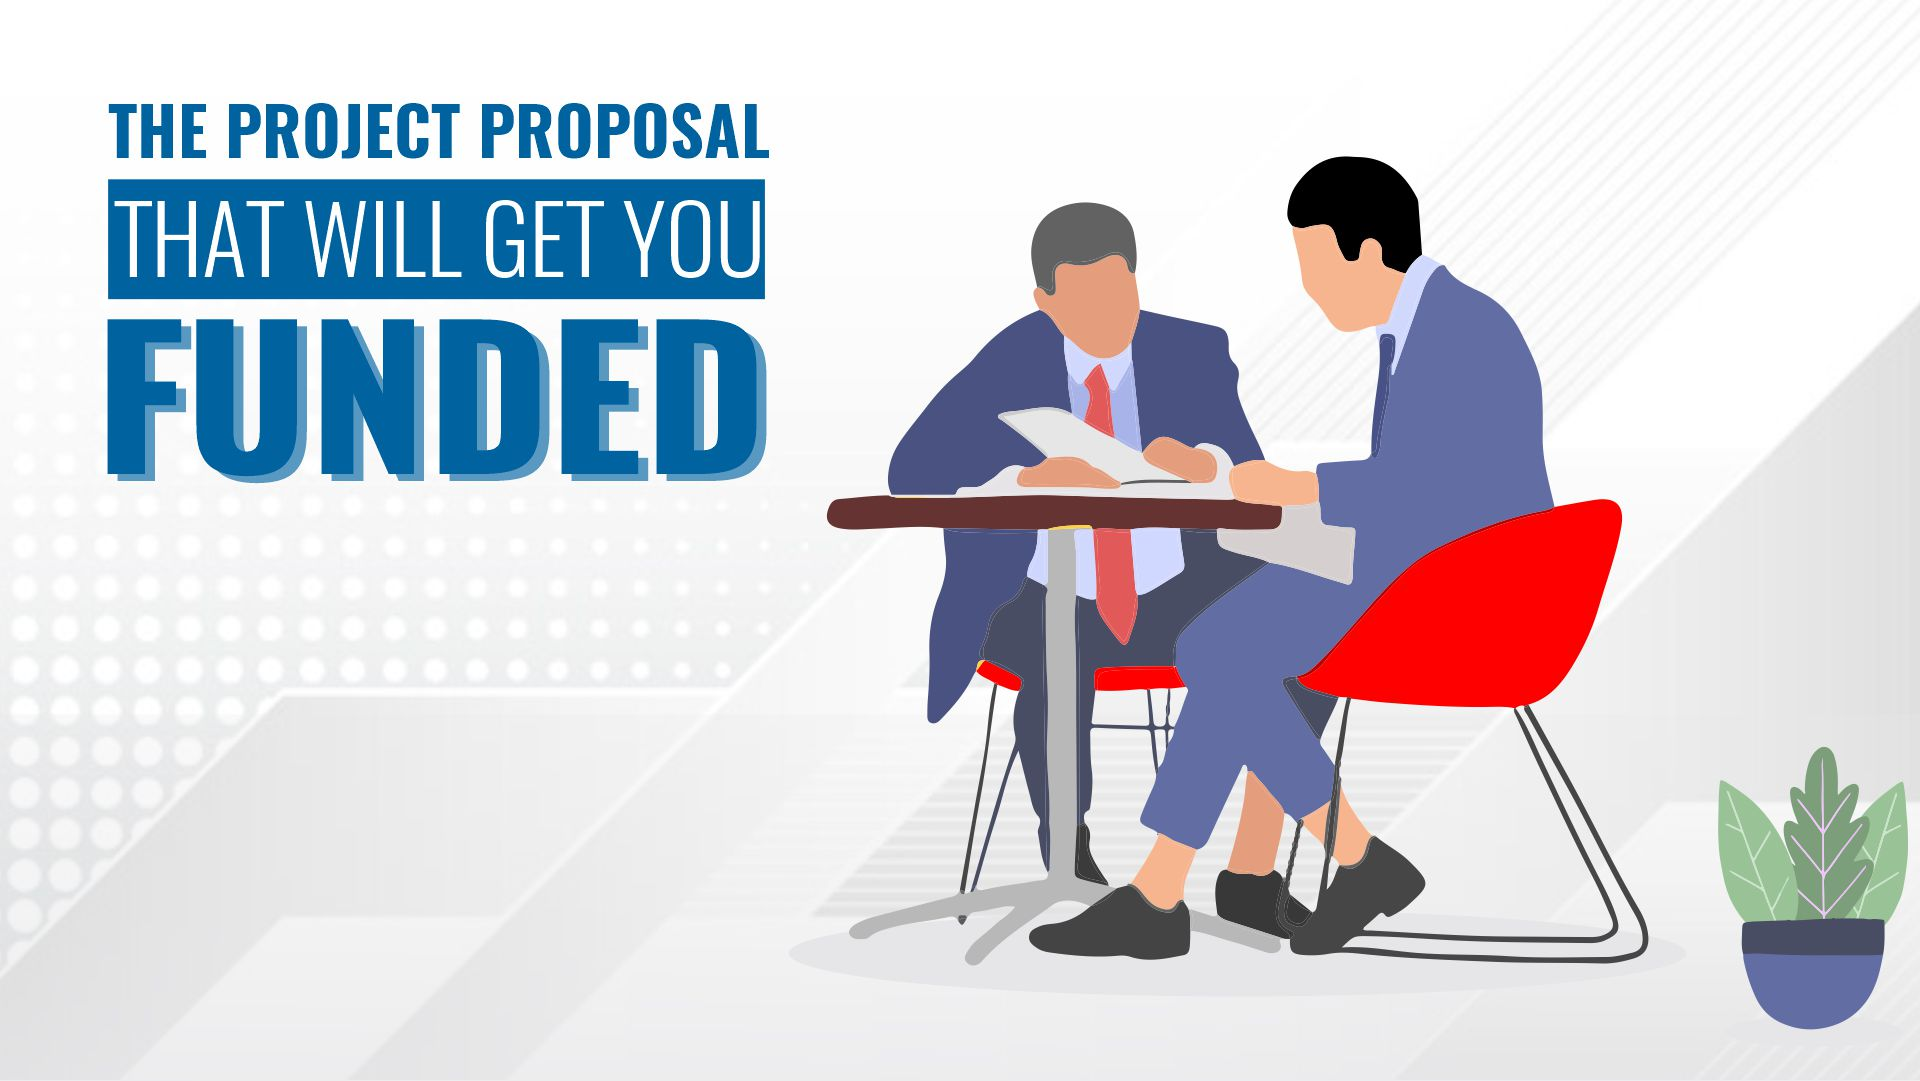 The Project Proposal That Will Get You Funded & Project Proposal Examples